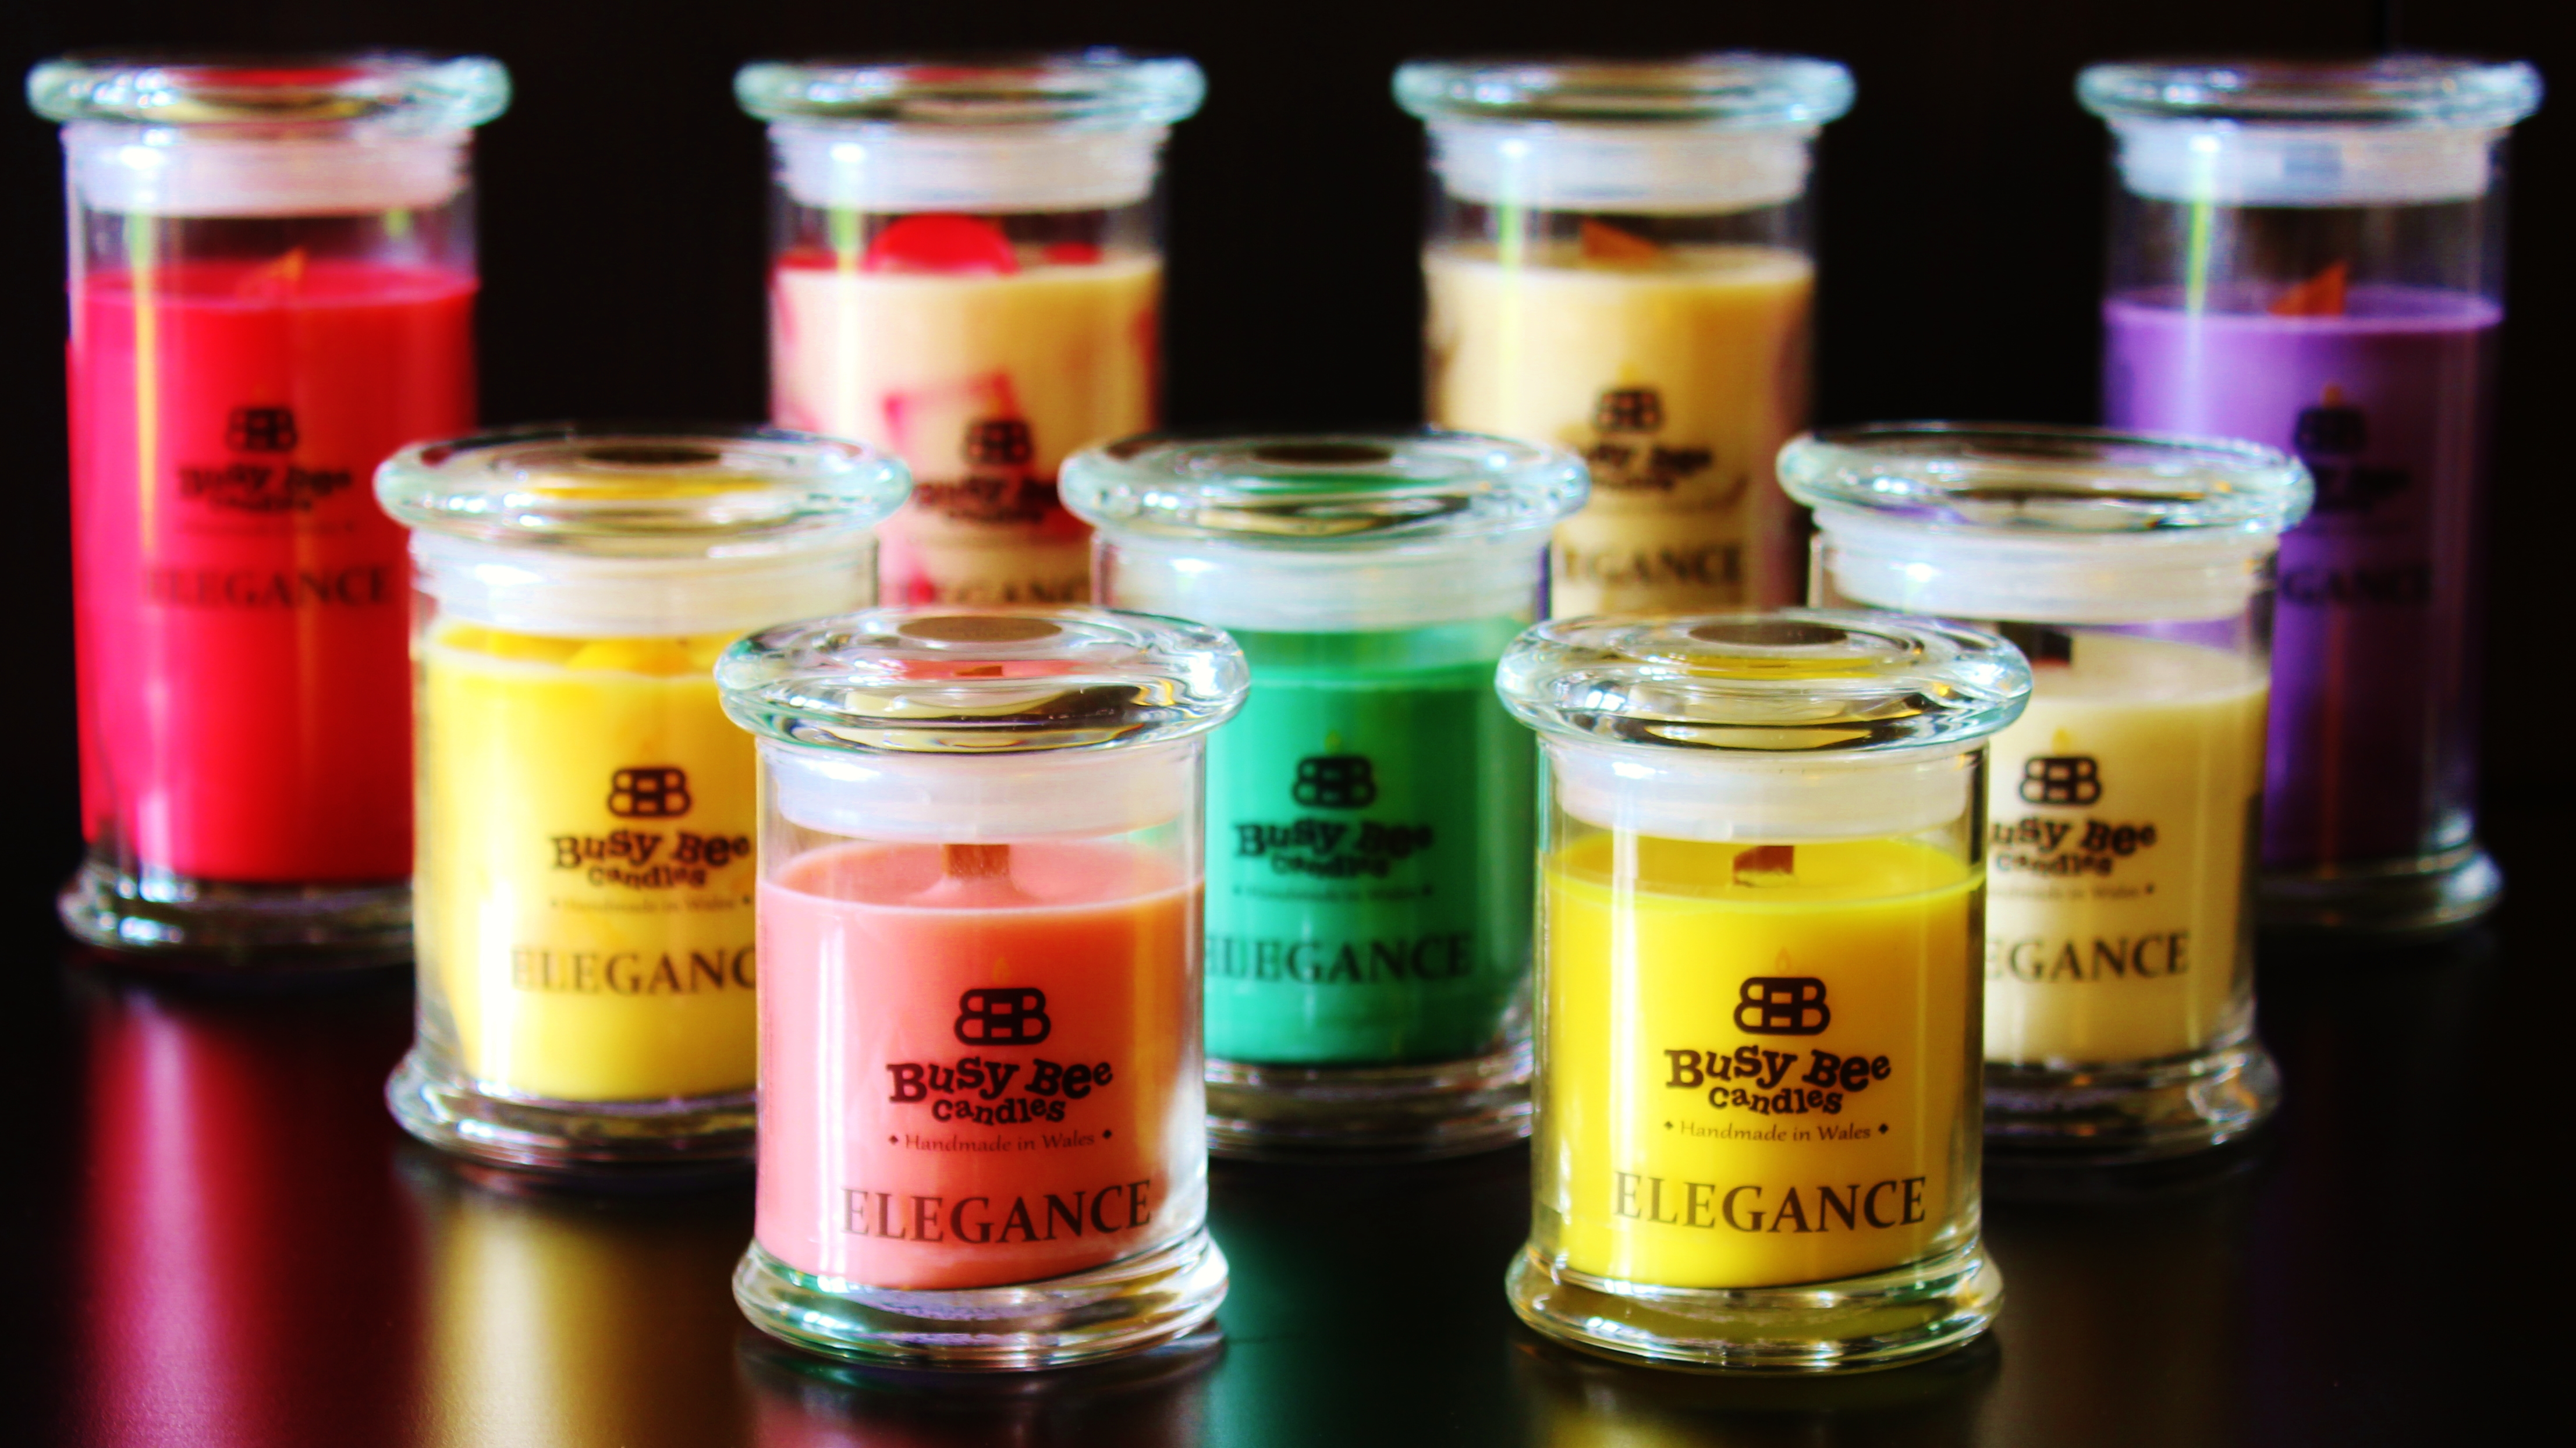 What Are Busy Bee Candles Elegance Scented Candles